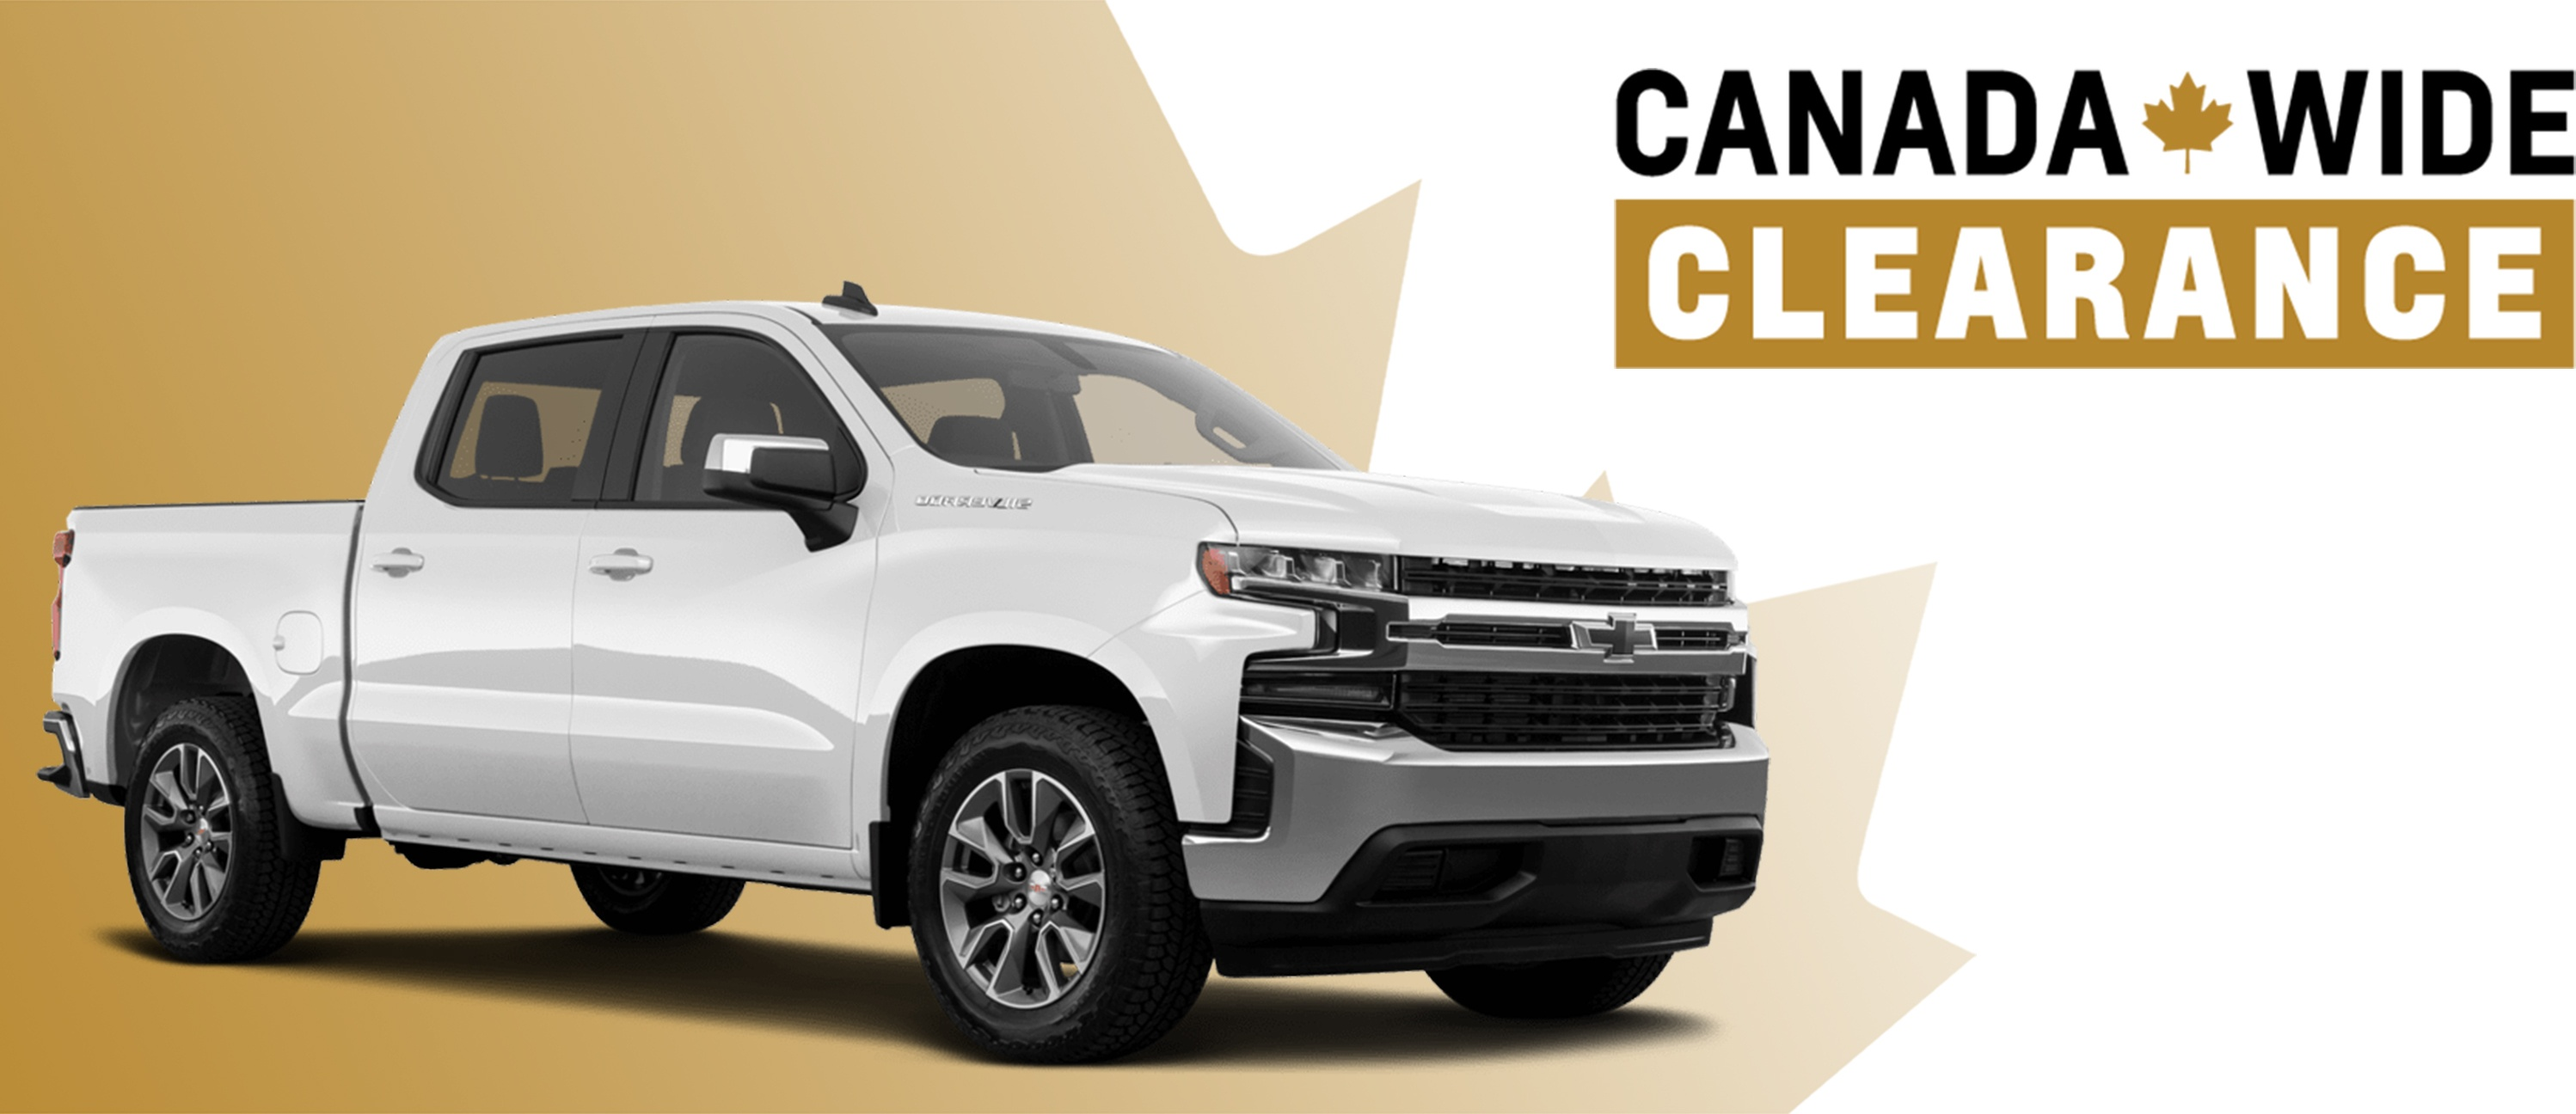 CHEVROLET CANADA WIDE CLEARANCE